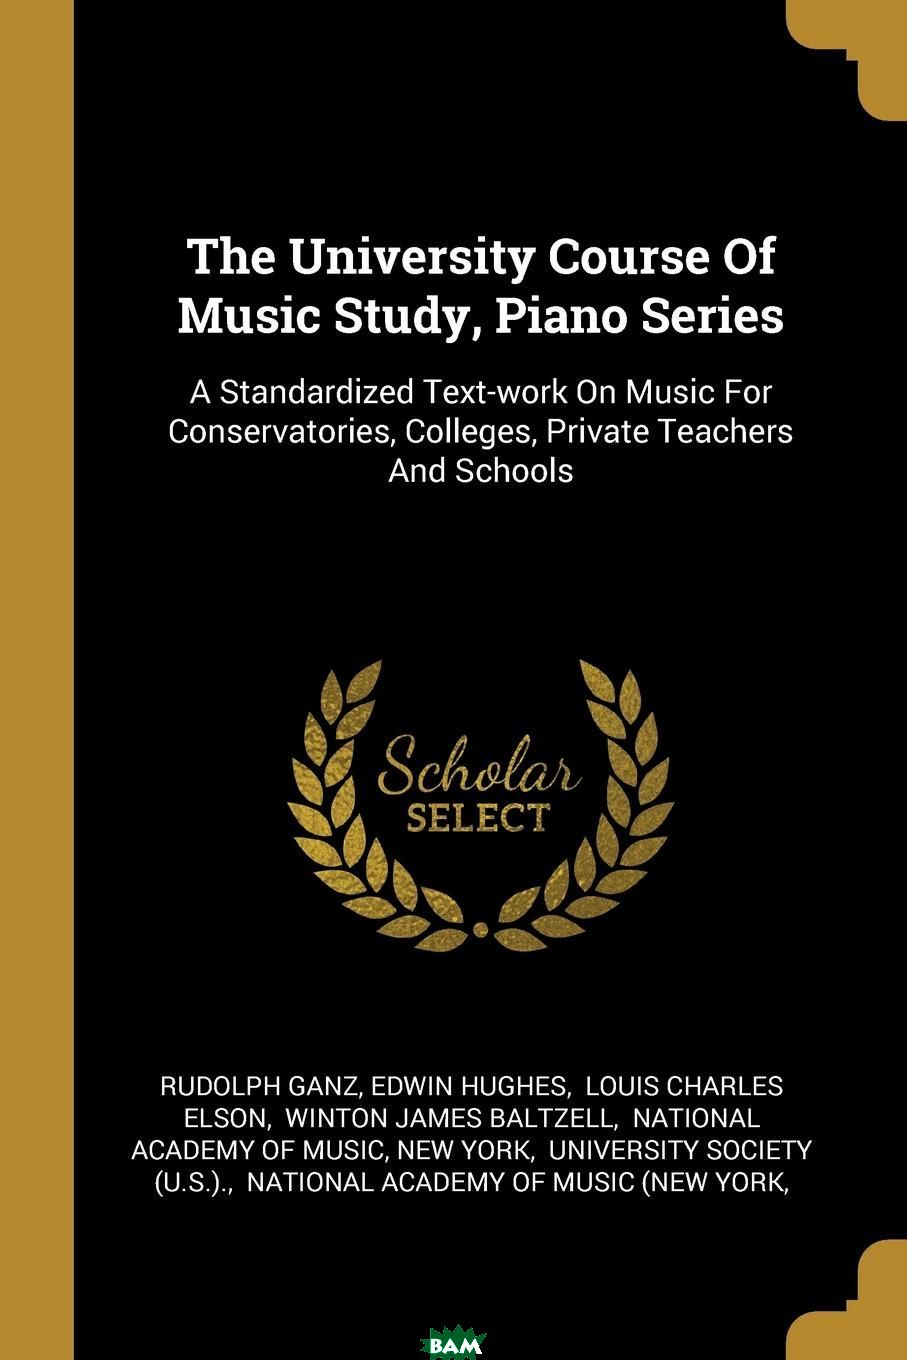 Купить The University Course Of Music Study, Piano Series. A Standardized Text-work On Music For Conservatories, Colleges, Private Teachers And Schools, Rudolph Ganz, Edwin Hughes, 9781011208586